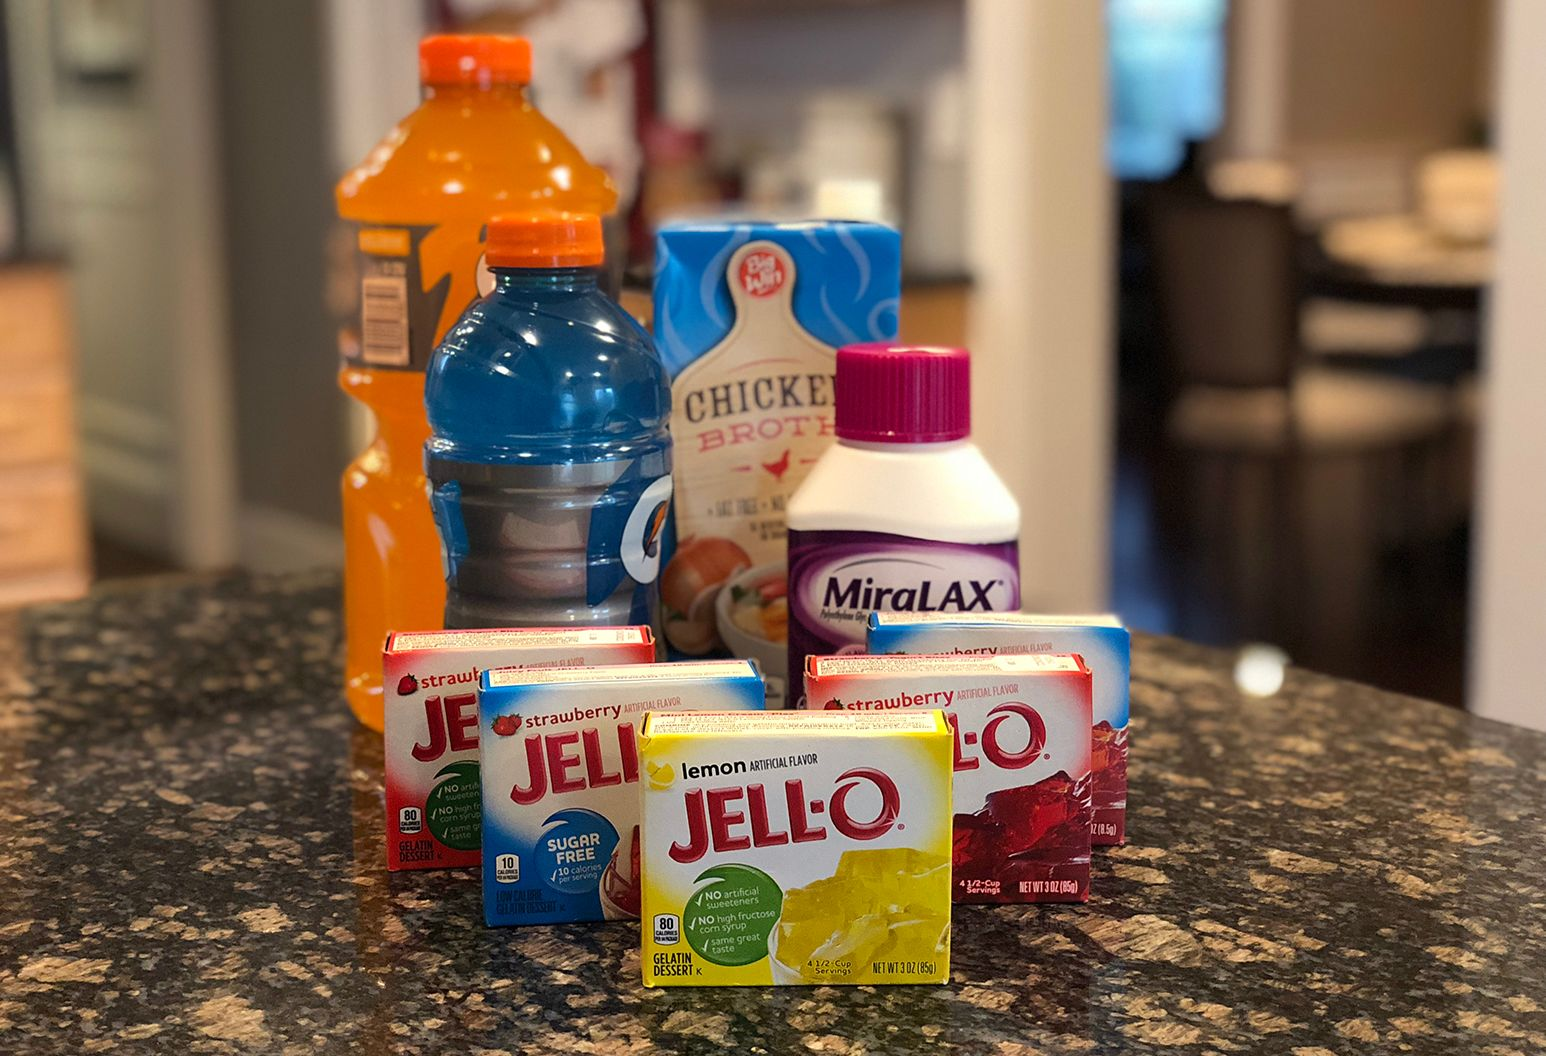 Items you may want while prepping  *These products are just examples. I am not advising that anyone use only these products for colonoscopy prep